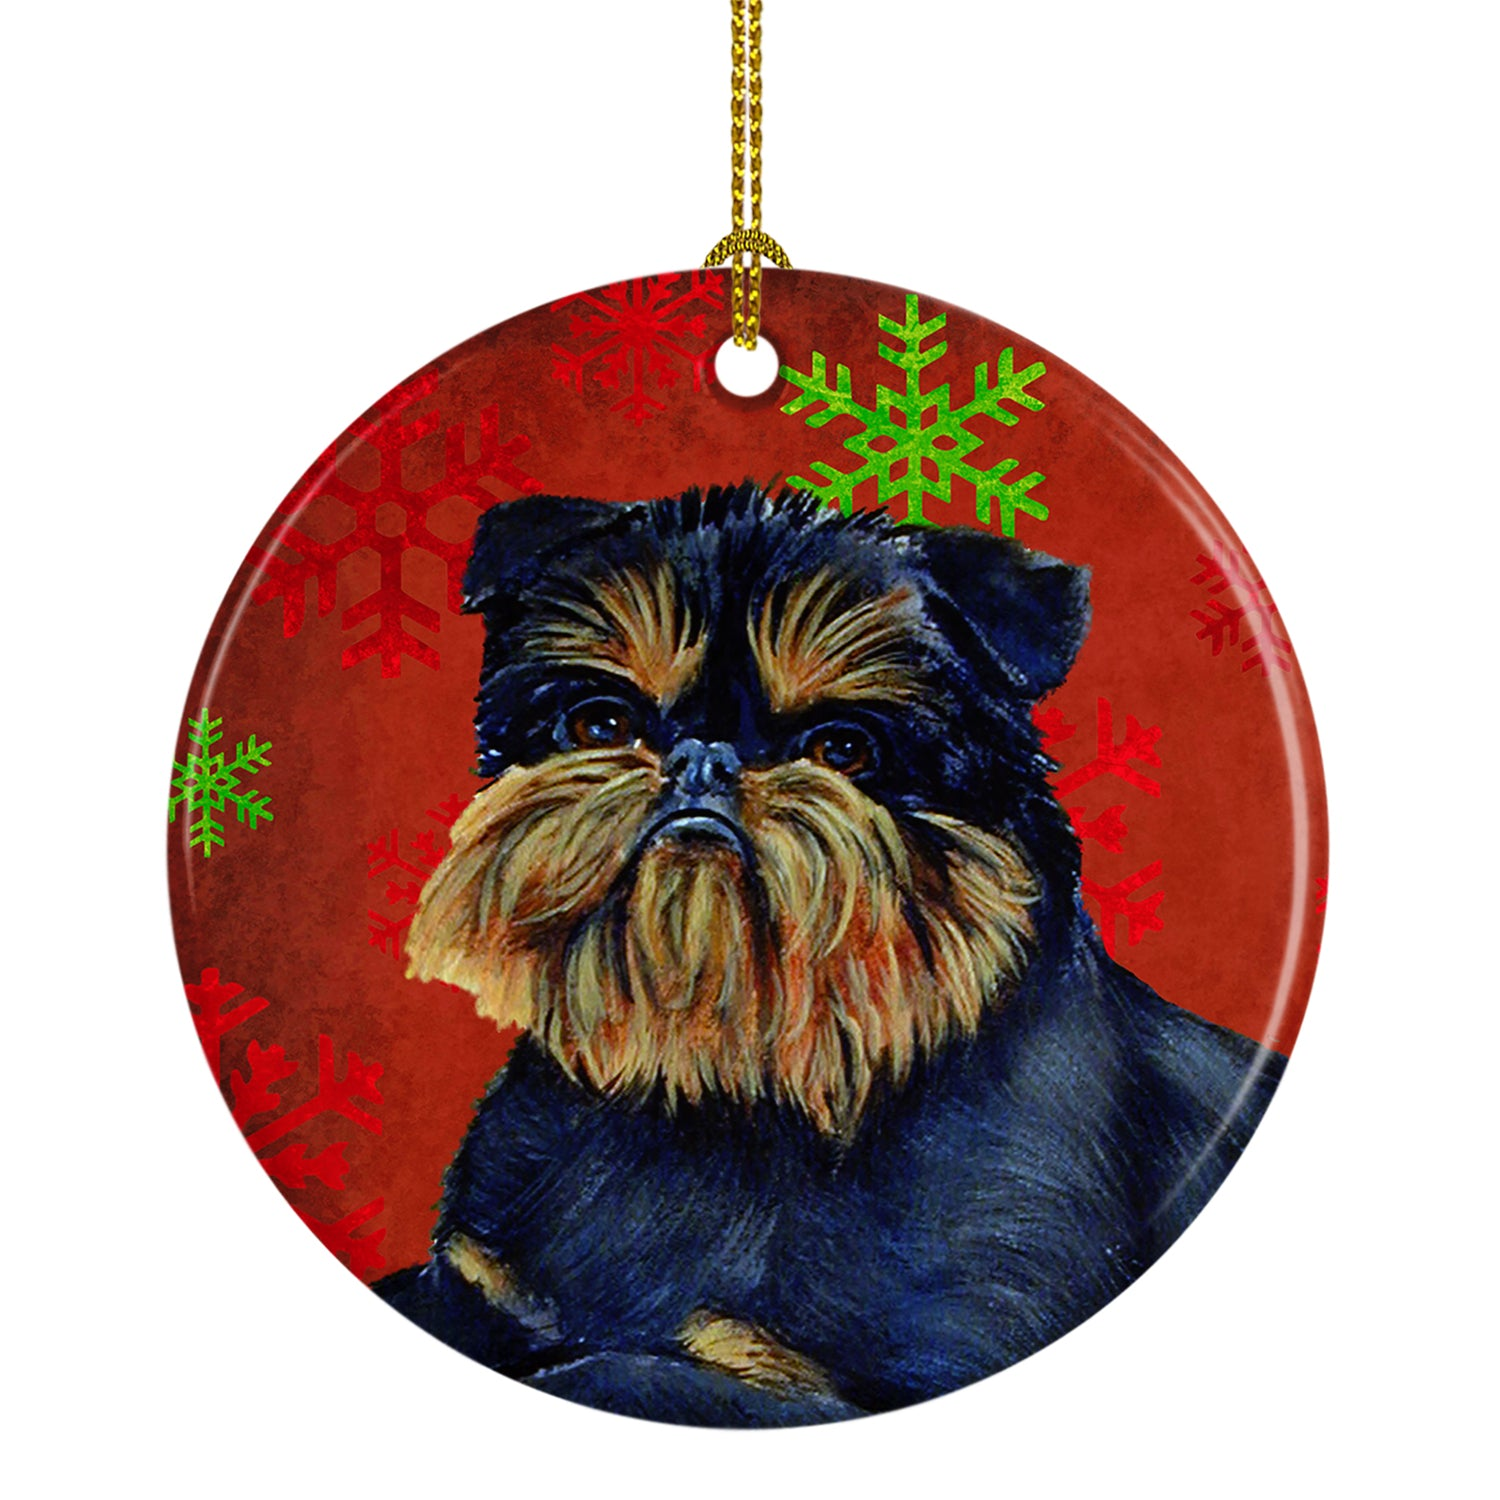 Brussels Griffon Red Snowflake Holiday Christmas Ceramic Ornament LH9343 by Caroline's Treasures